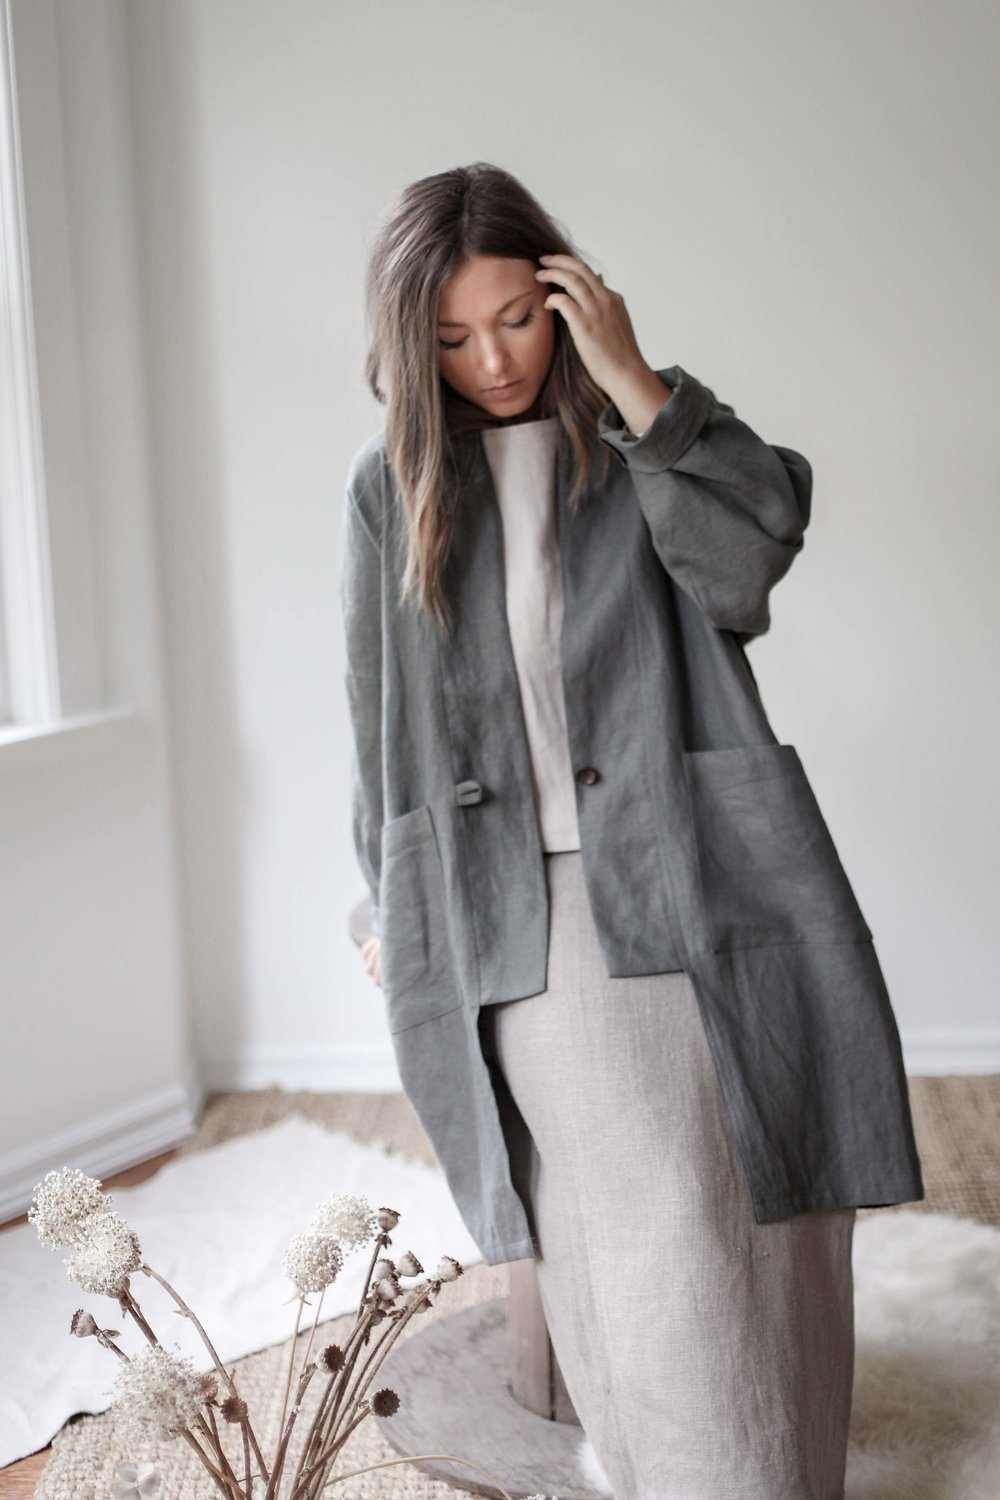 nomi-designs_kim-long-jacket_forest-colored_natural-linen-long-sleeve-jacket_front.jpg